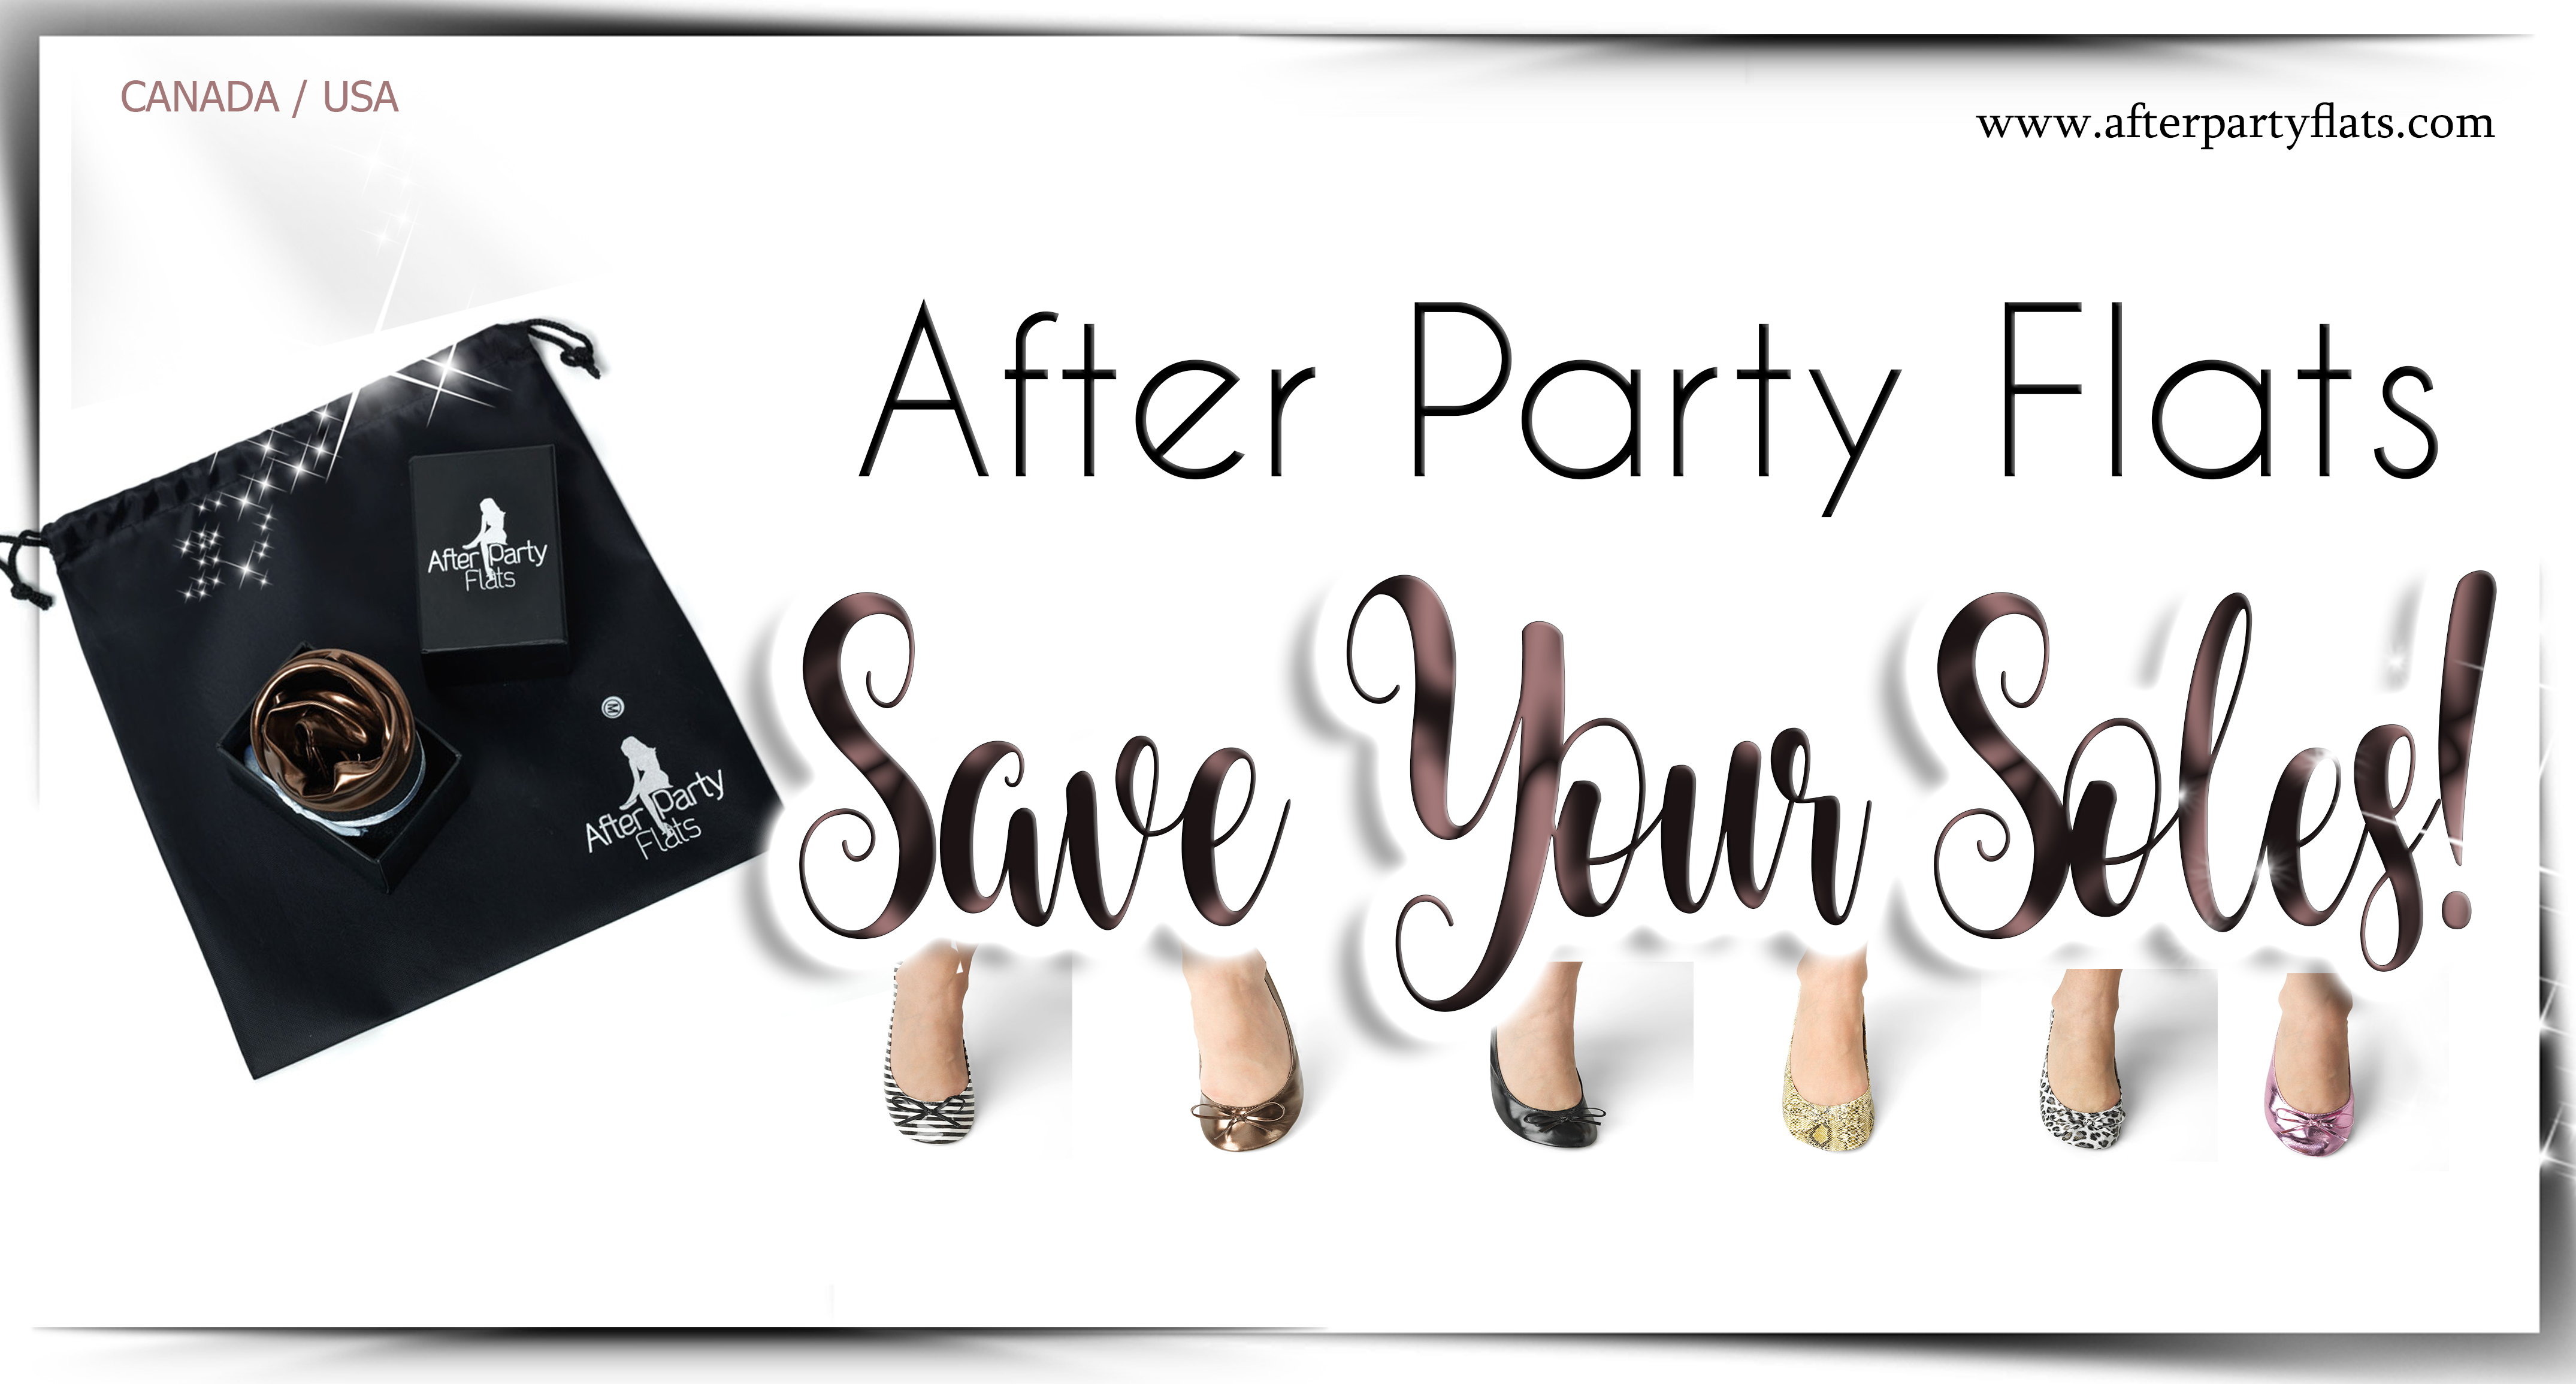 AFTER PARTY FLATS FB COVER PLAIN SHOES 10